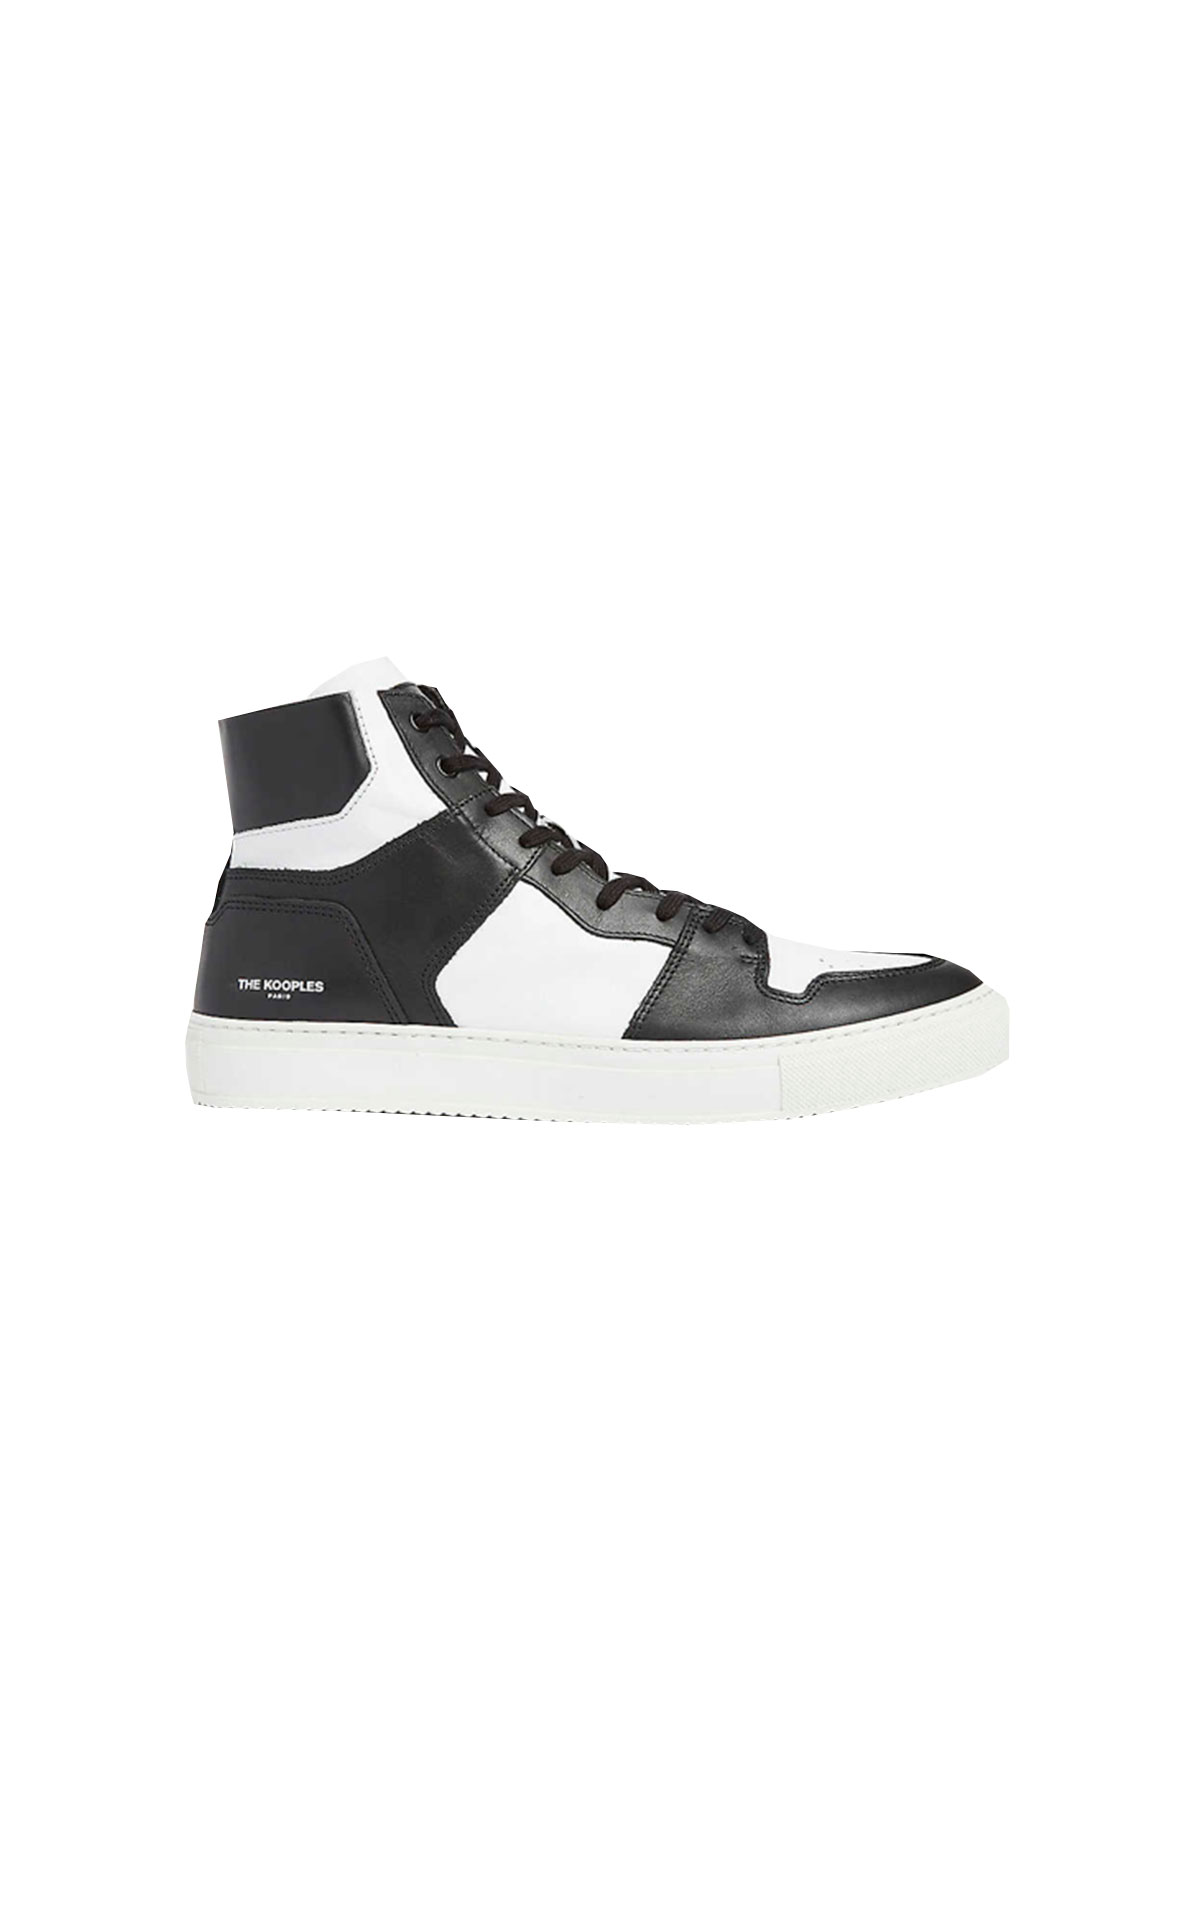 Black and white sneakers The Kooples